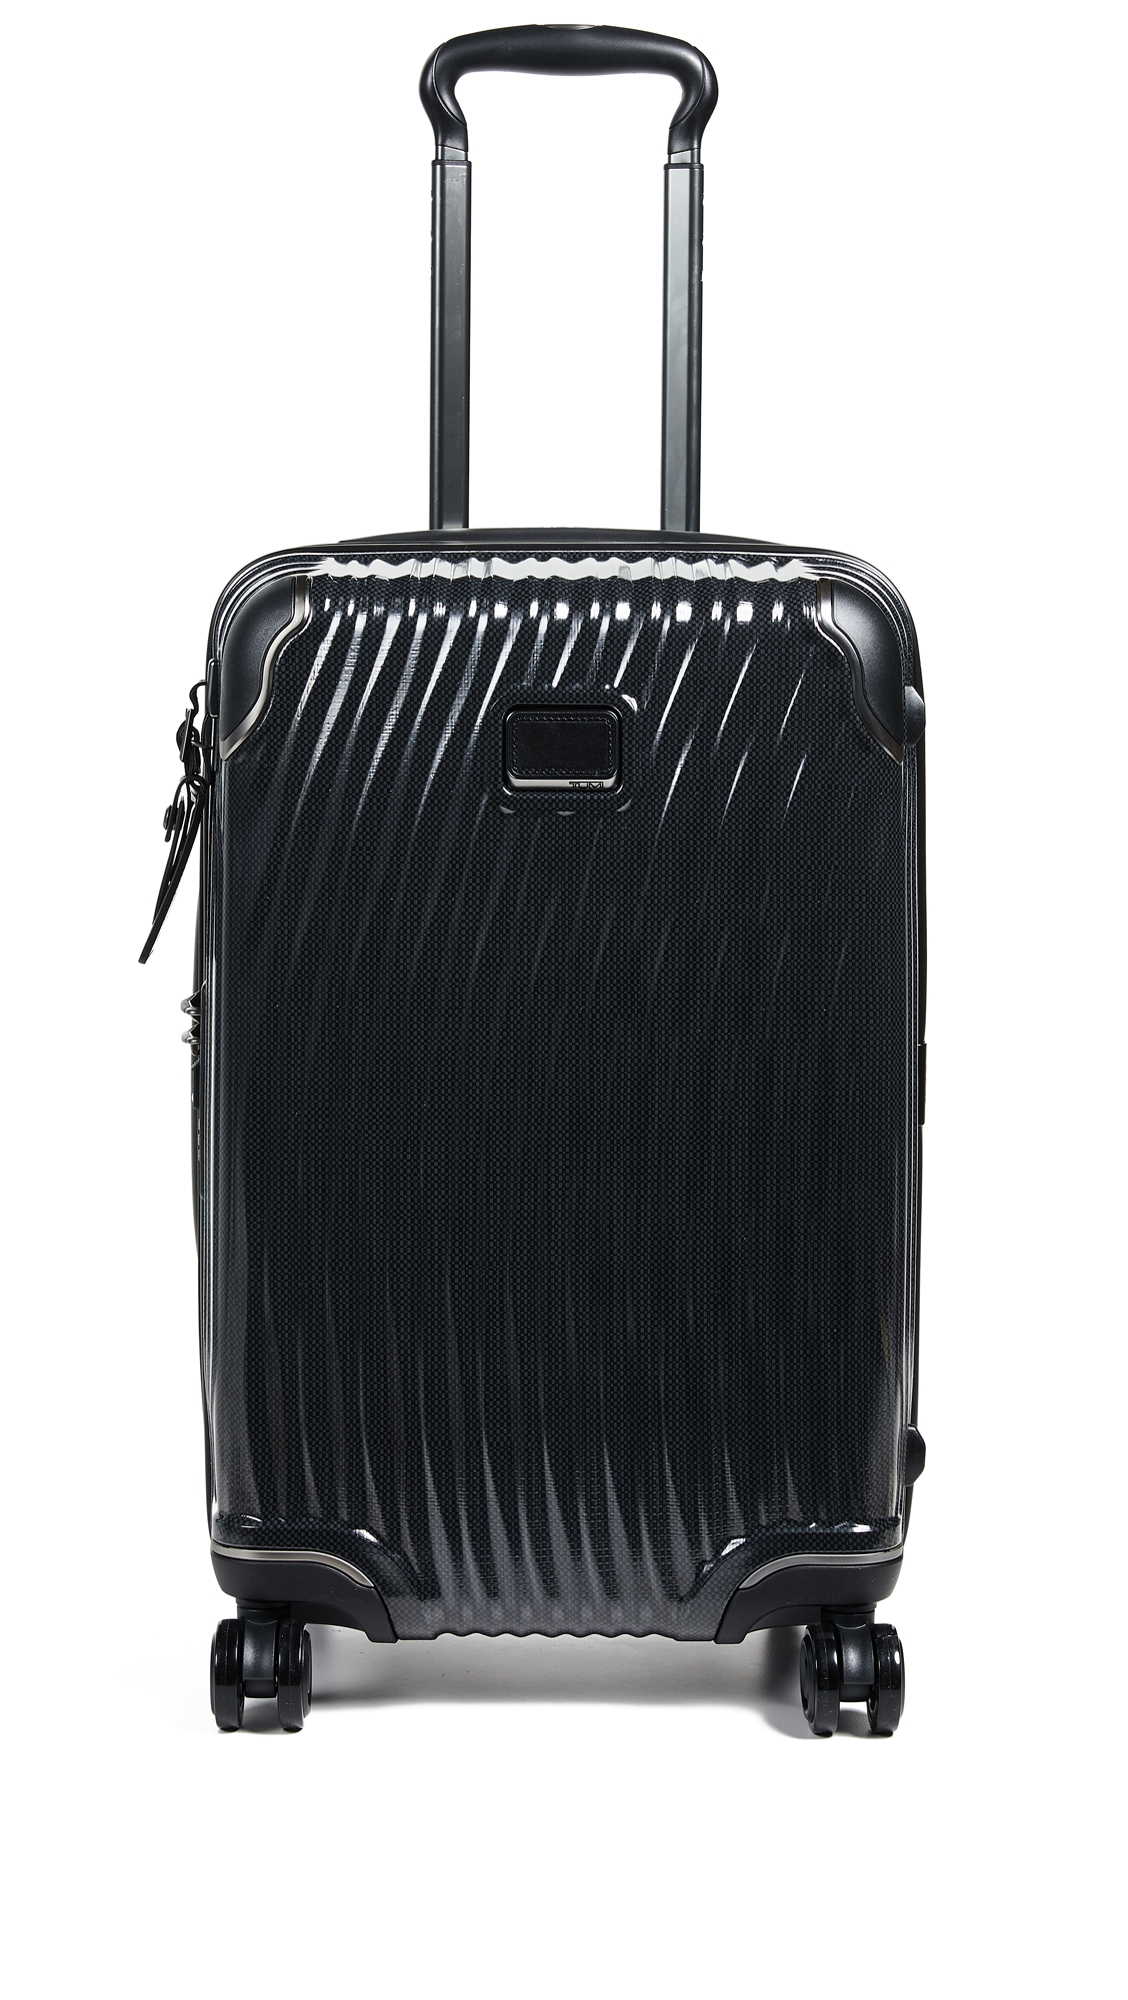 Latitude International Carry On Suitcase, Black from EAST DANE